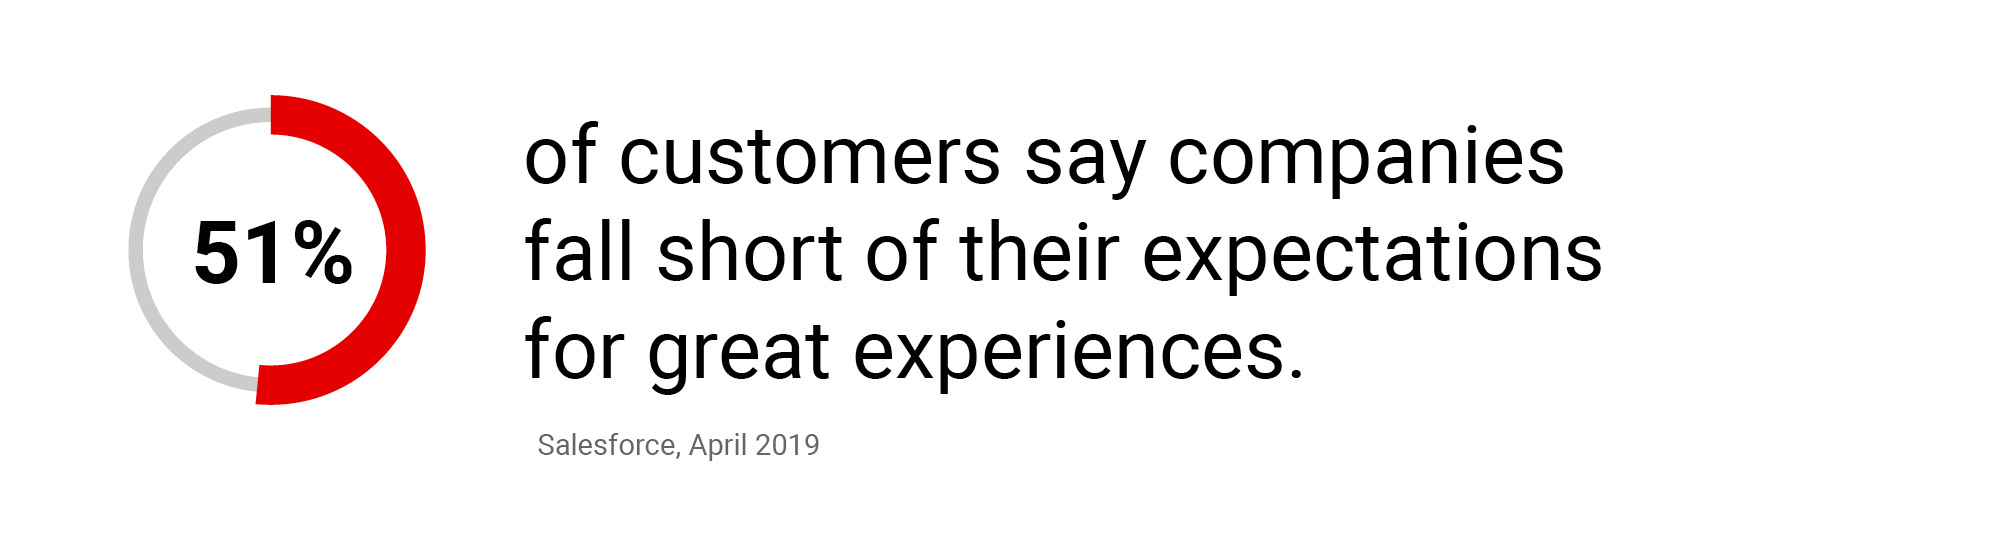 Stat from salesforce